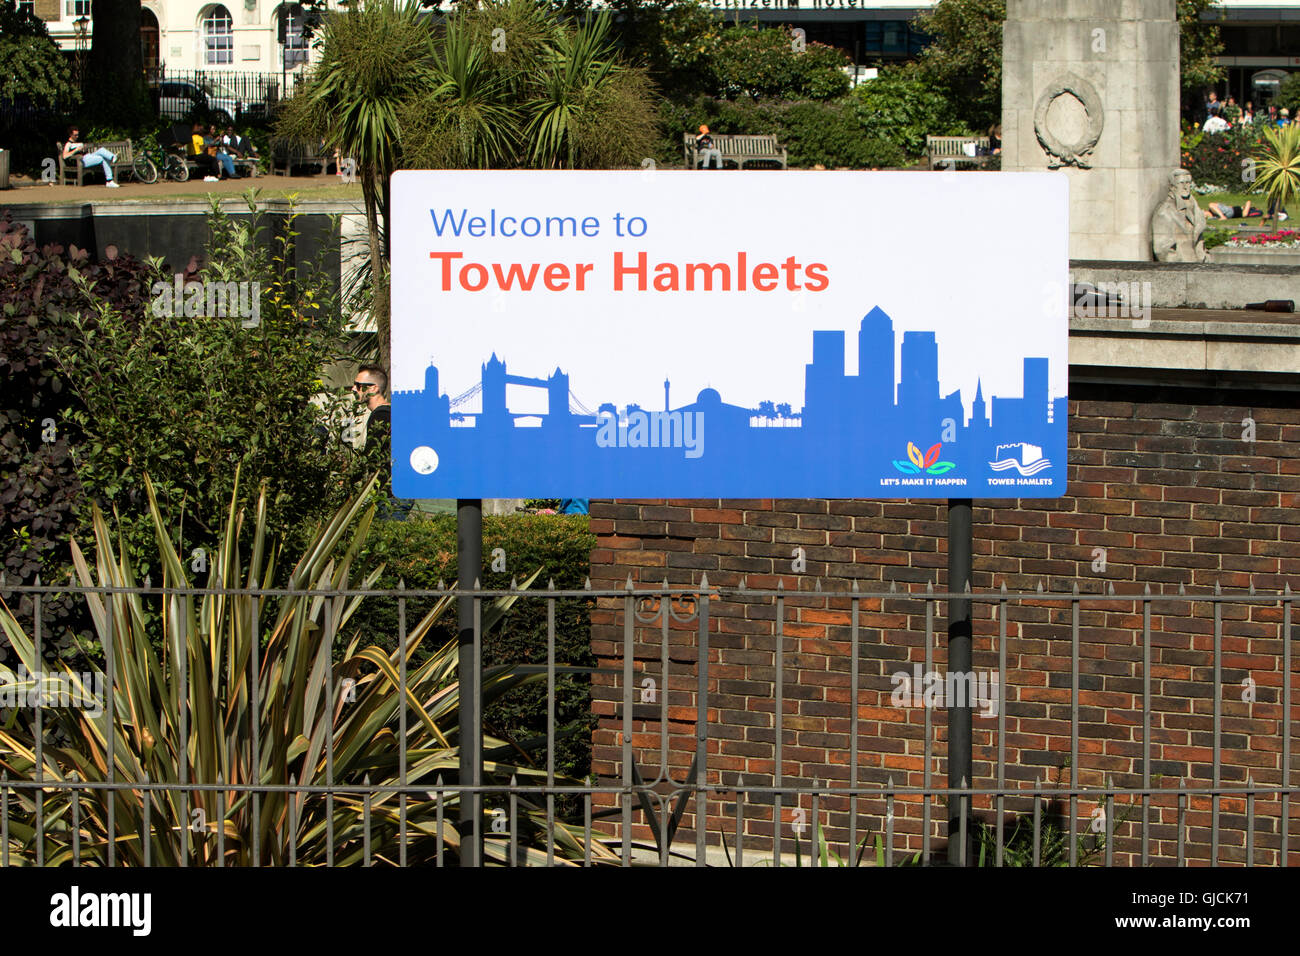 Welcome to The London Borough of Tower Hamlets sign - Stock Image